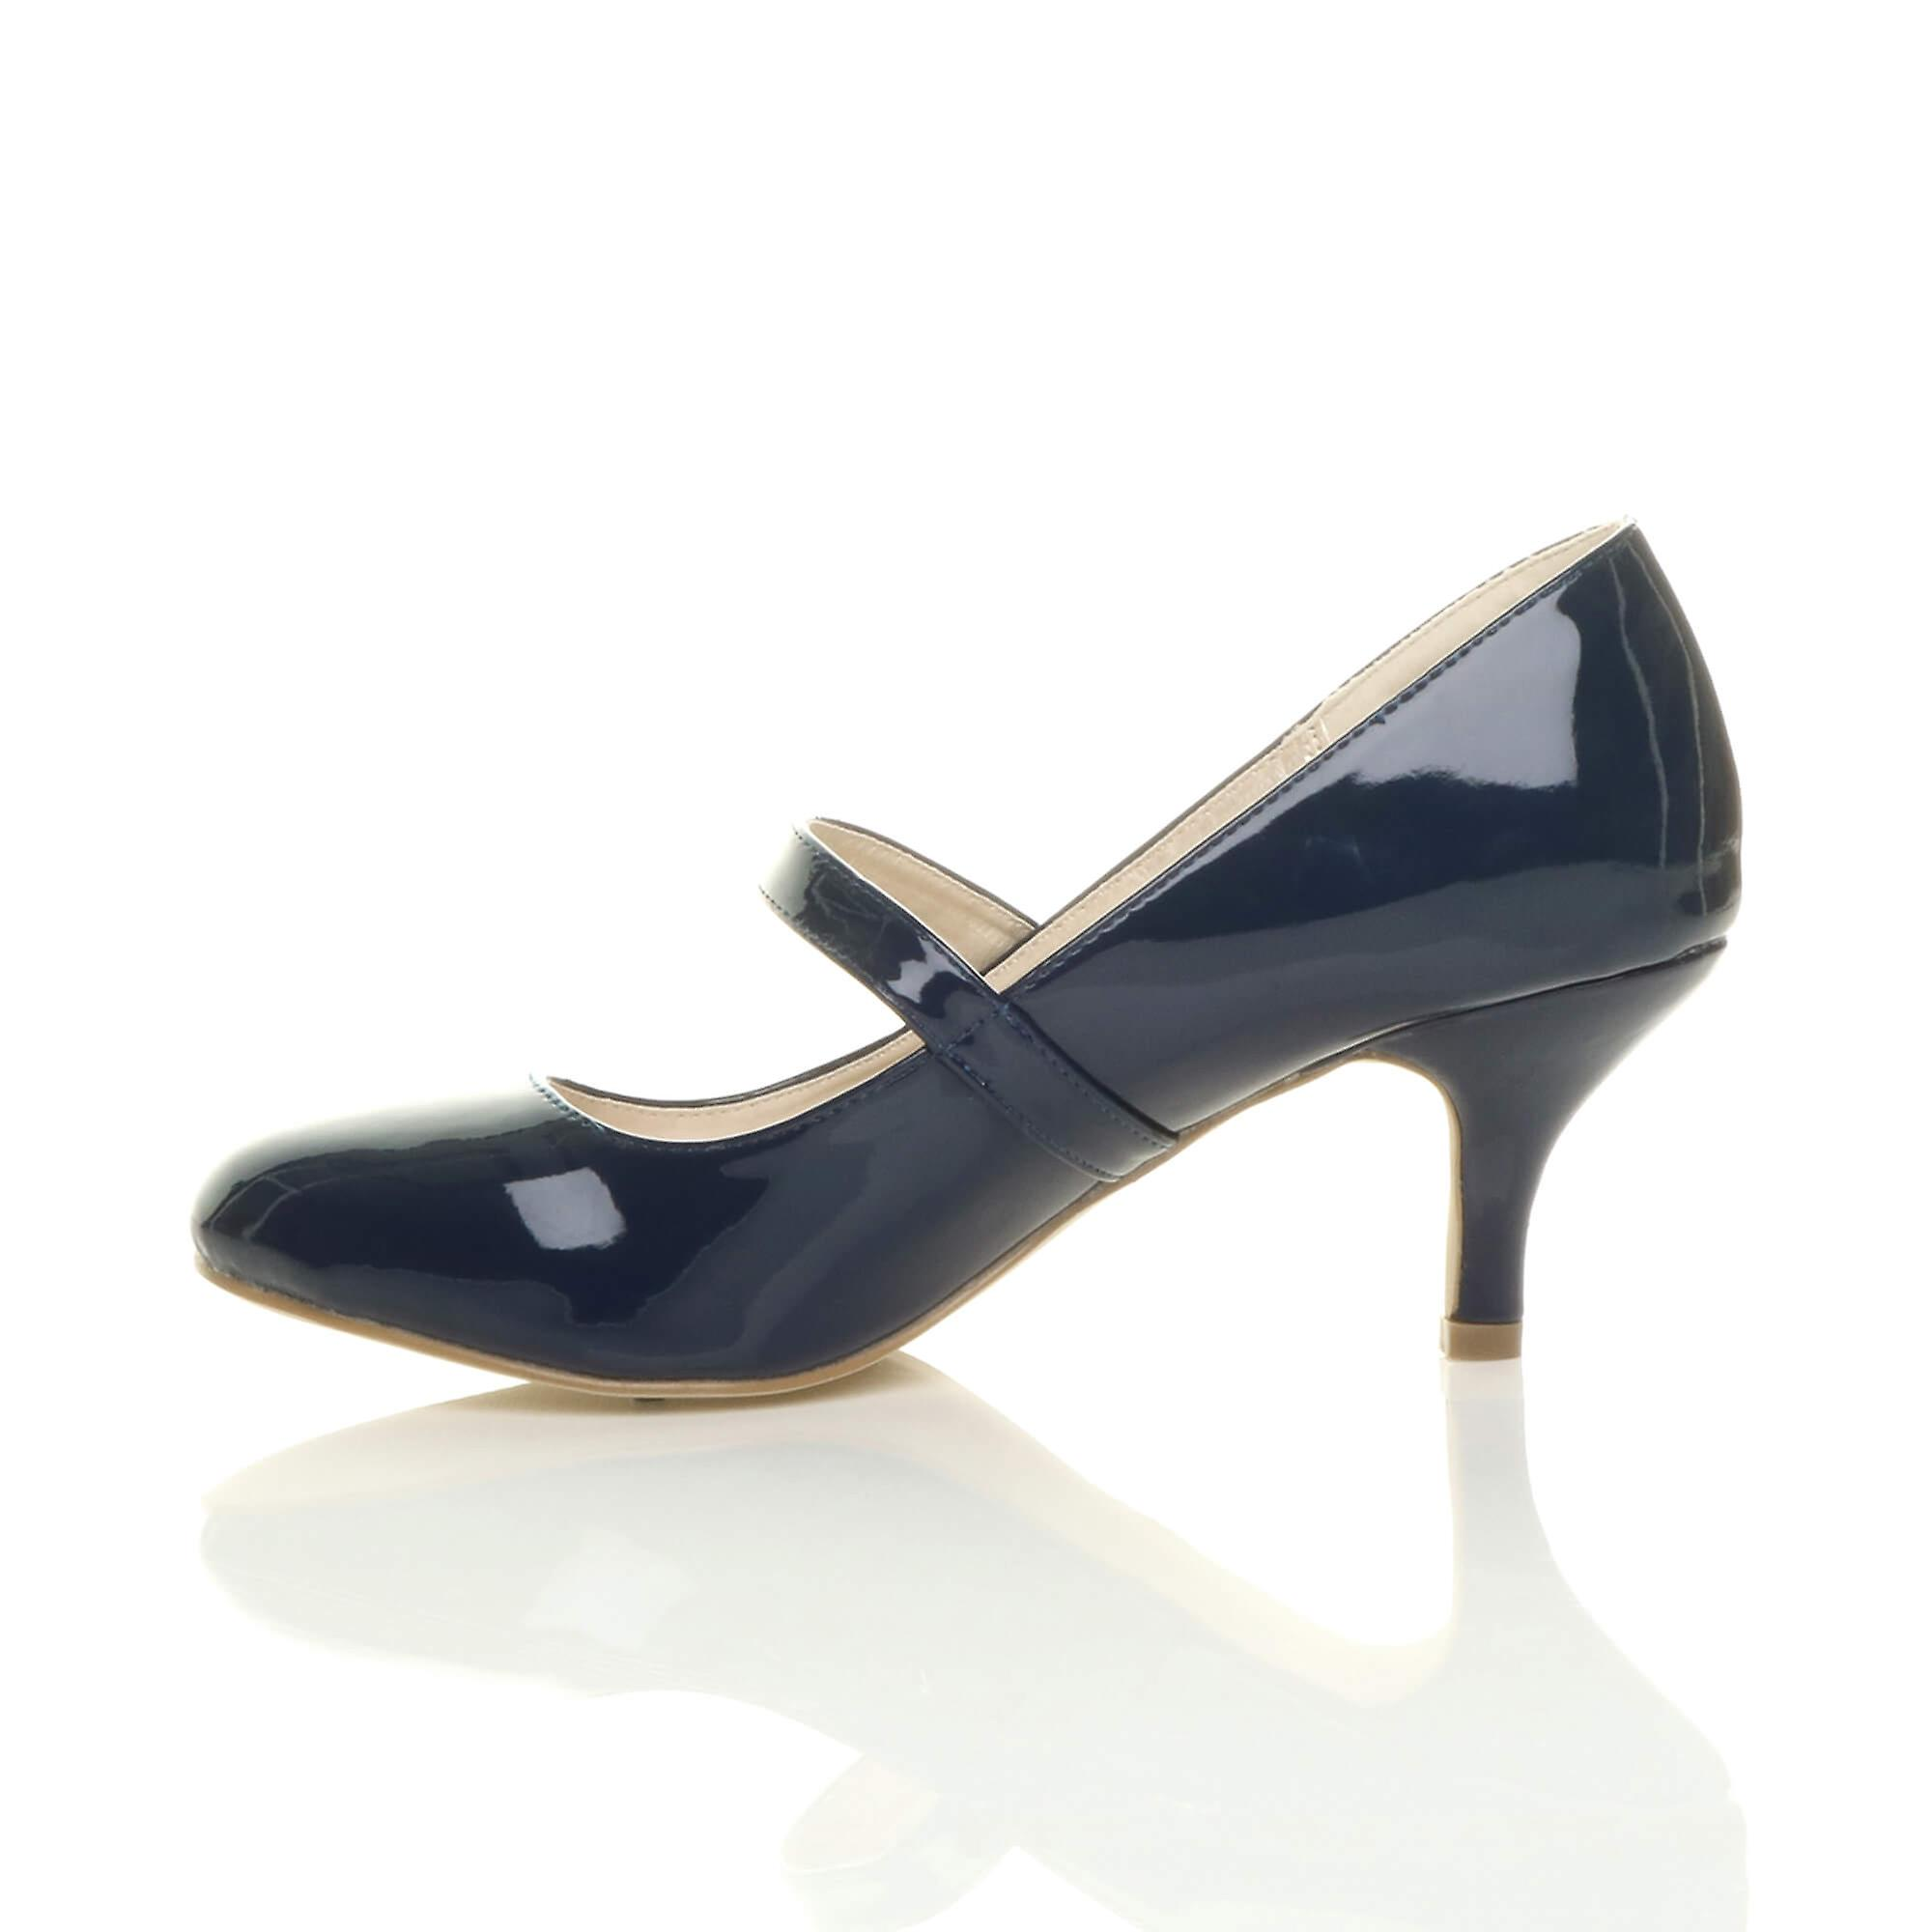 low party mid shoes strap Ajvani heel jane mary pumps womens work court gOaqwxq5S